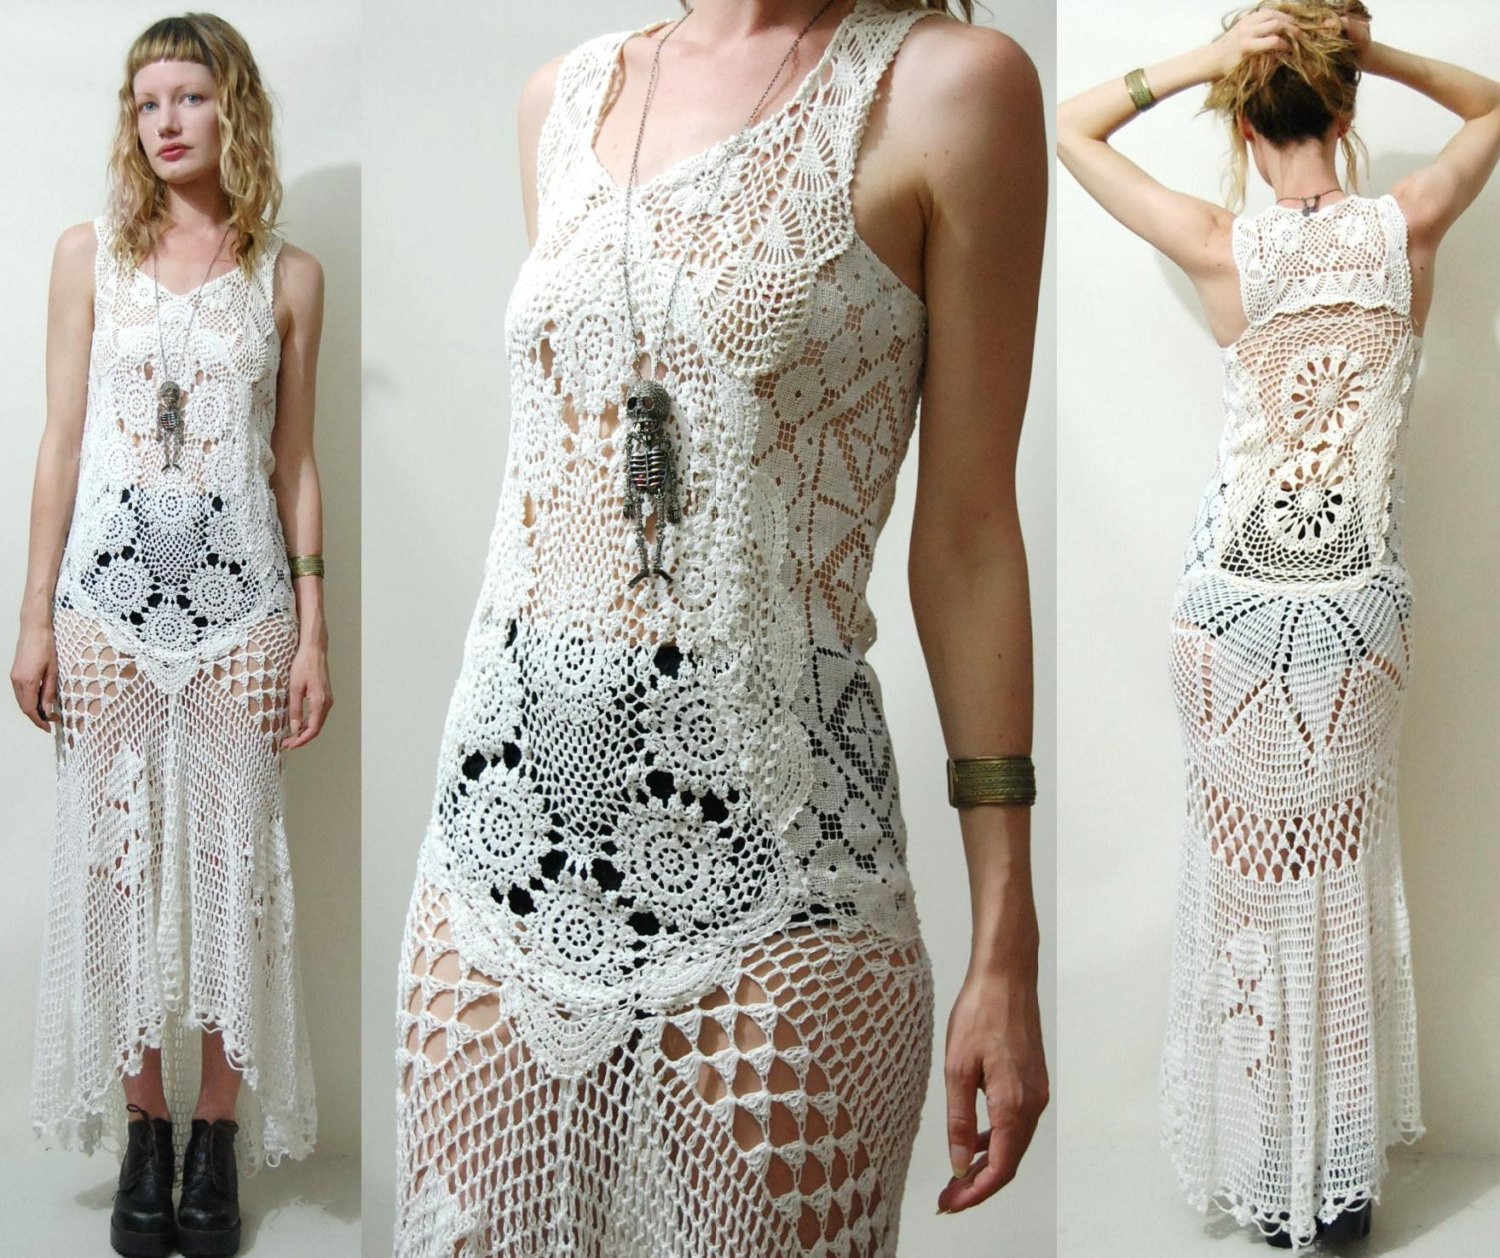 Awesome Crochet Dress Vintage Full Lace White Fishtail Train Bohemian Crochet Dress Of Awesome 50 Pictures Crochet Dress